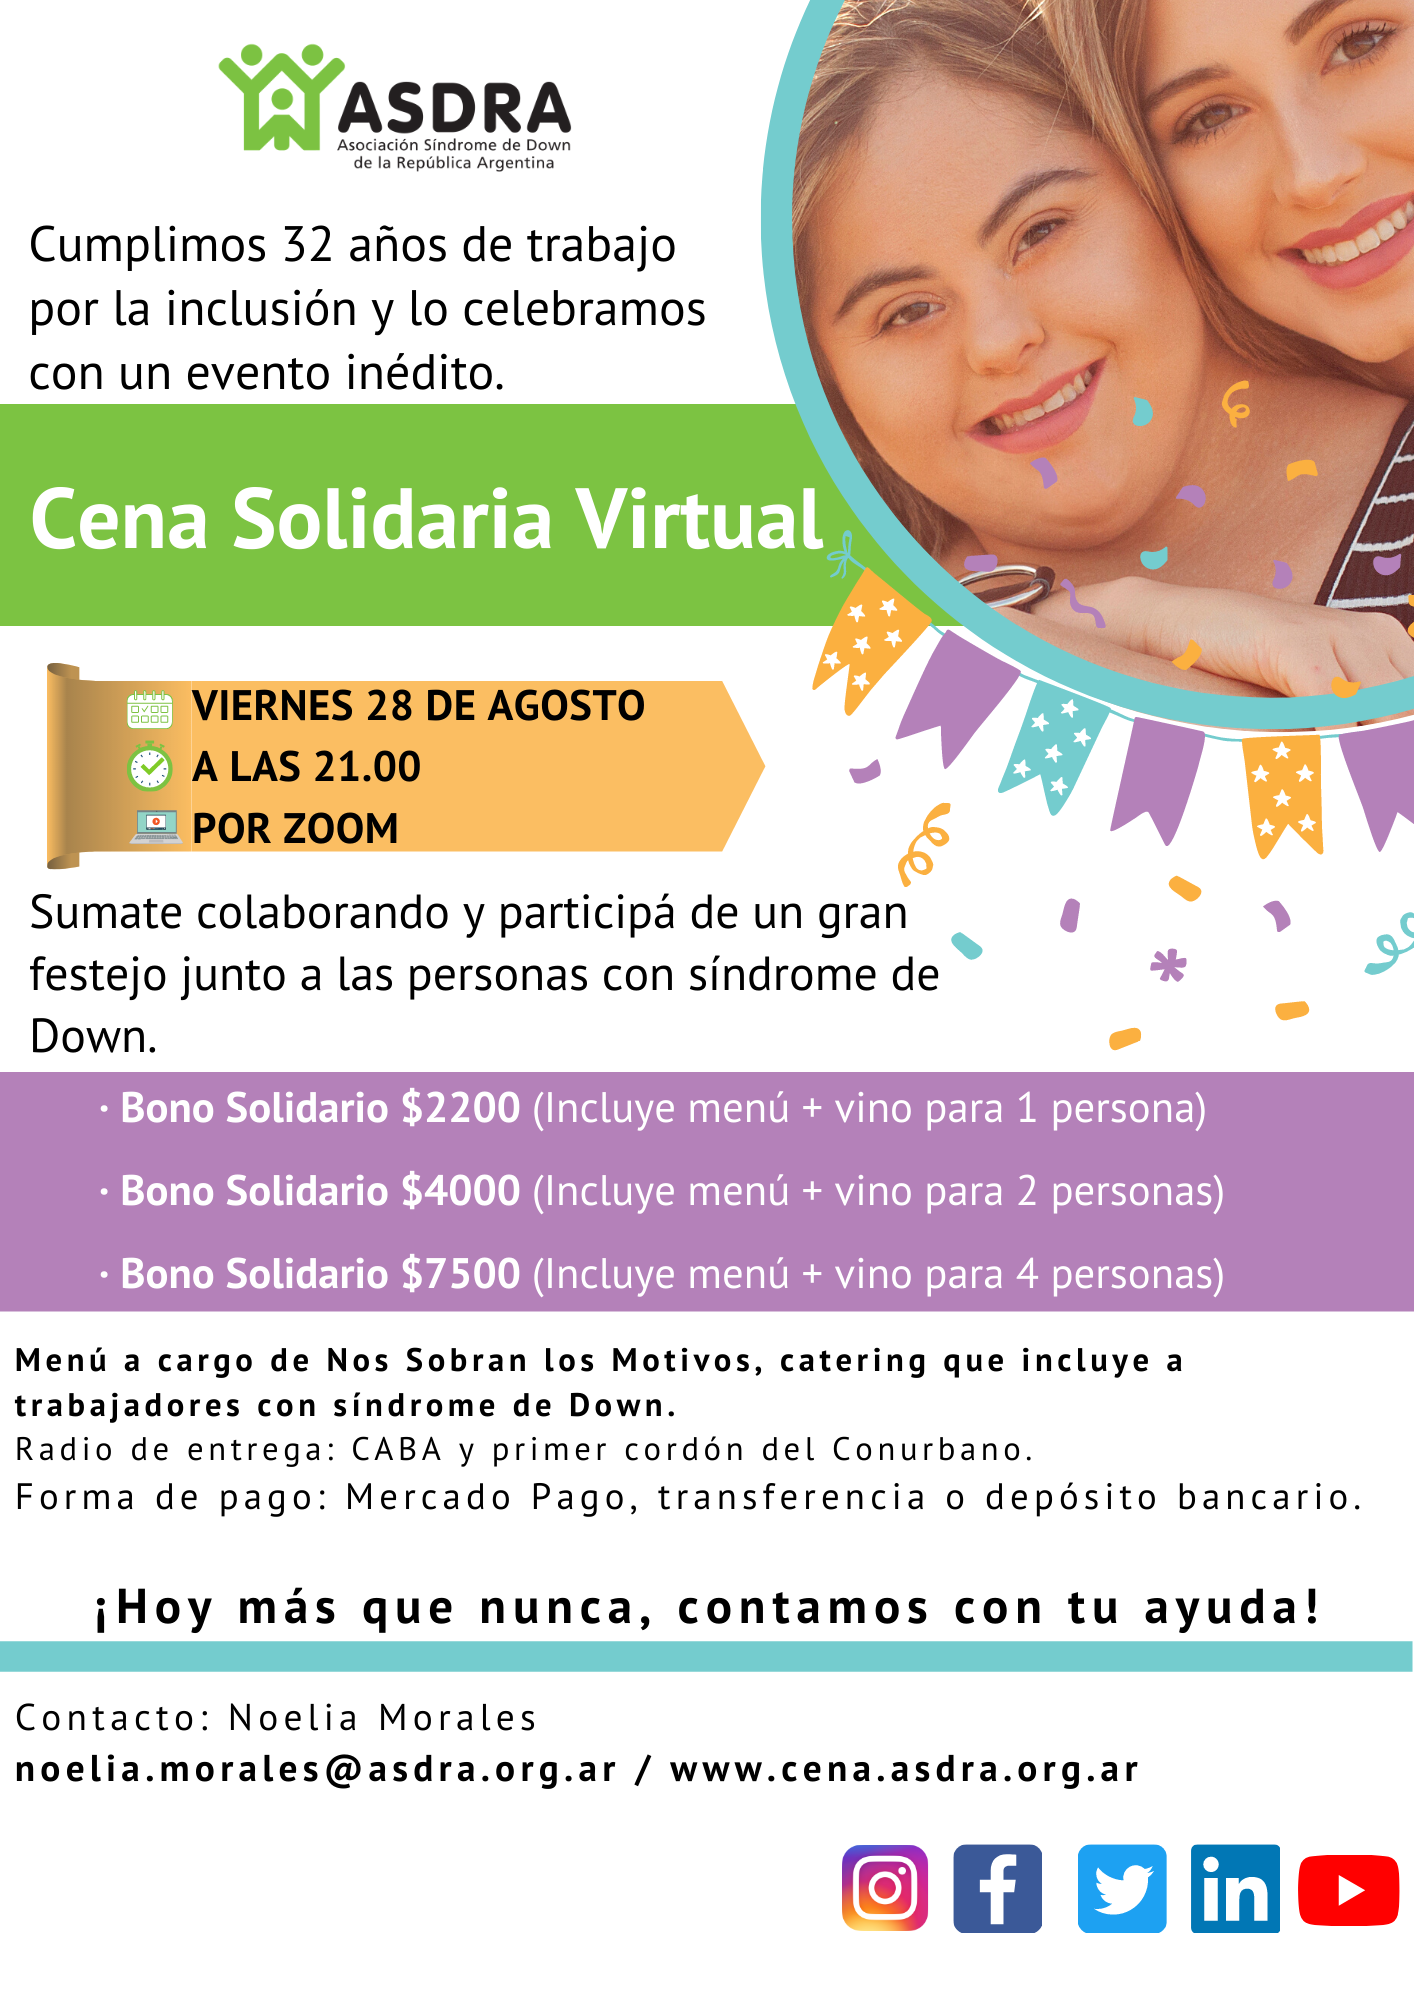 Cena Solidaria Virtual de ASDRA